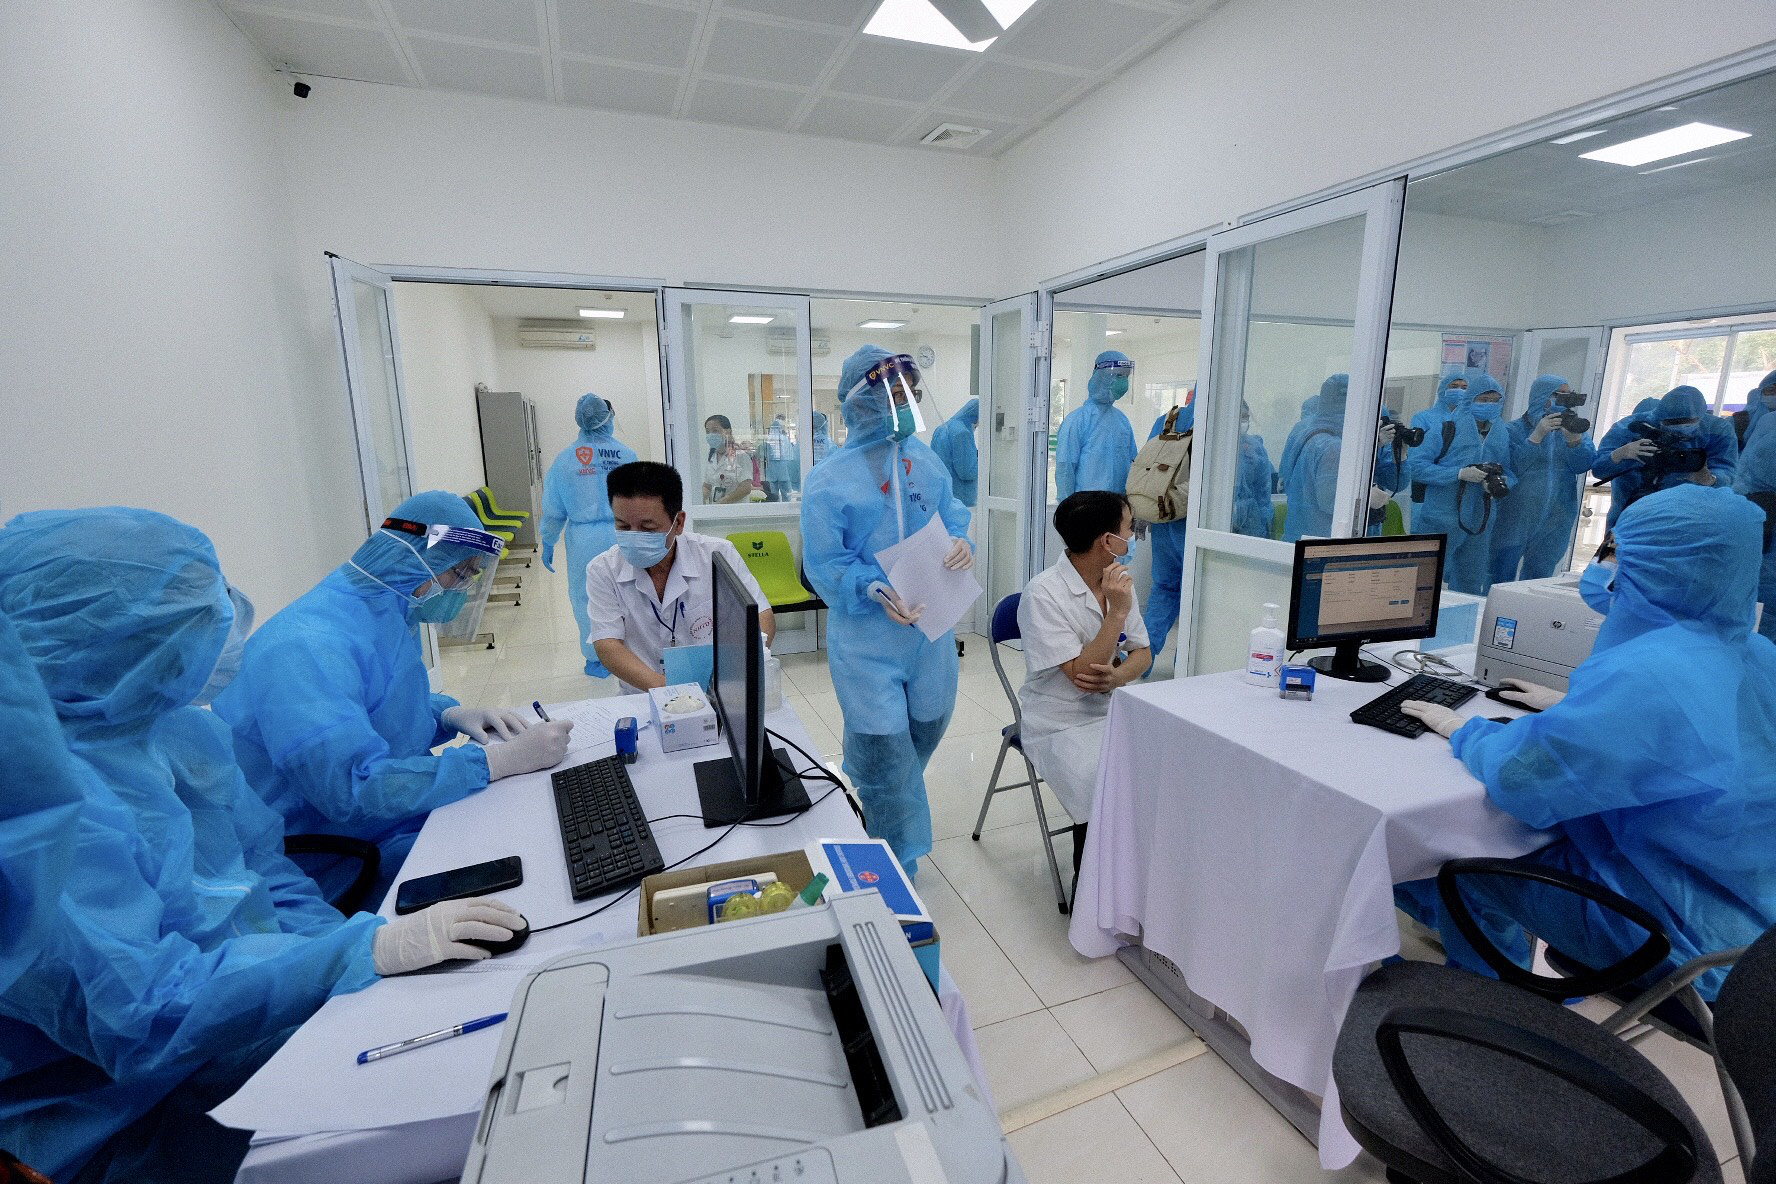 COVID-19 vaccination is carried out at the National Hospital for Tropical Diseases in Hanoi, March 8, 2021. Photo: Nam Tran / Tuoi Tre